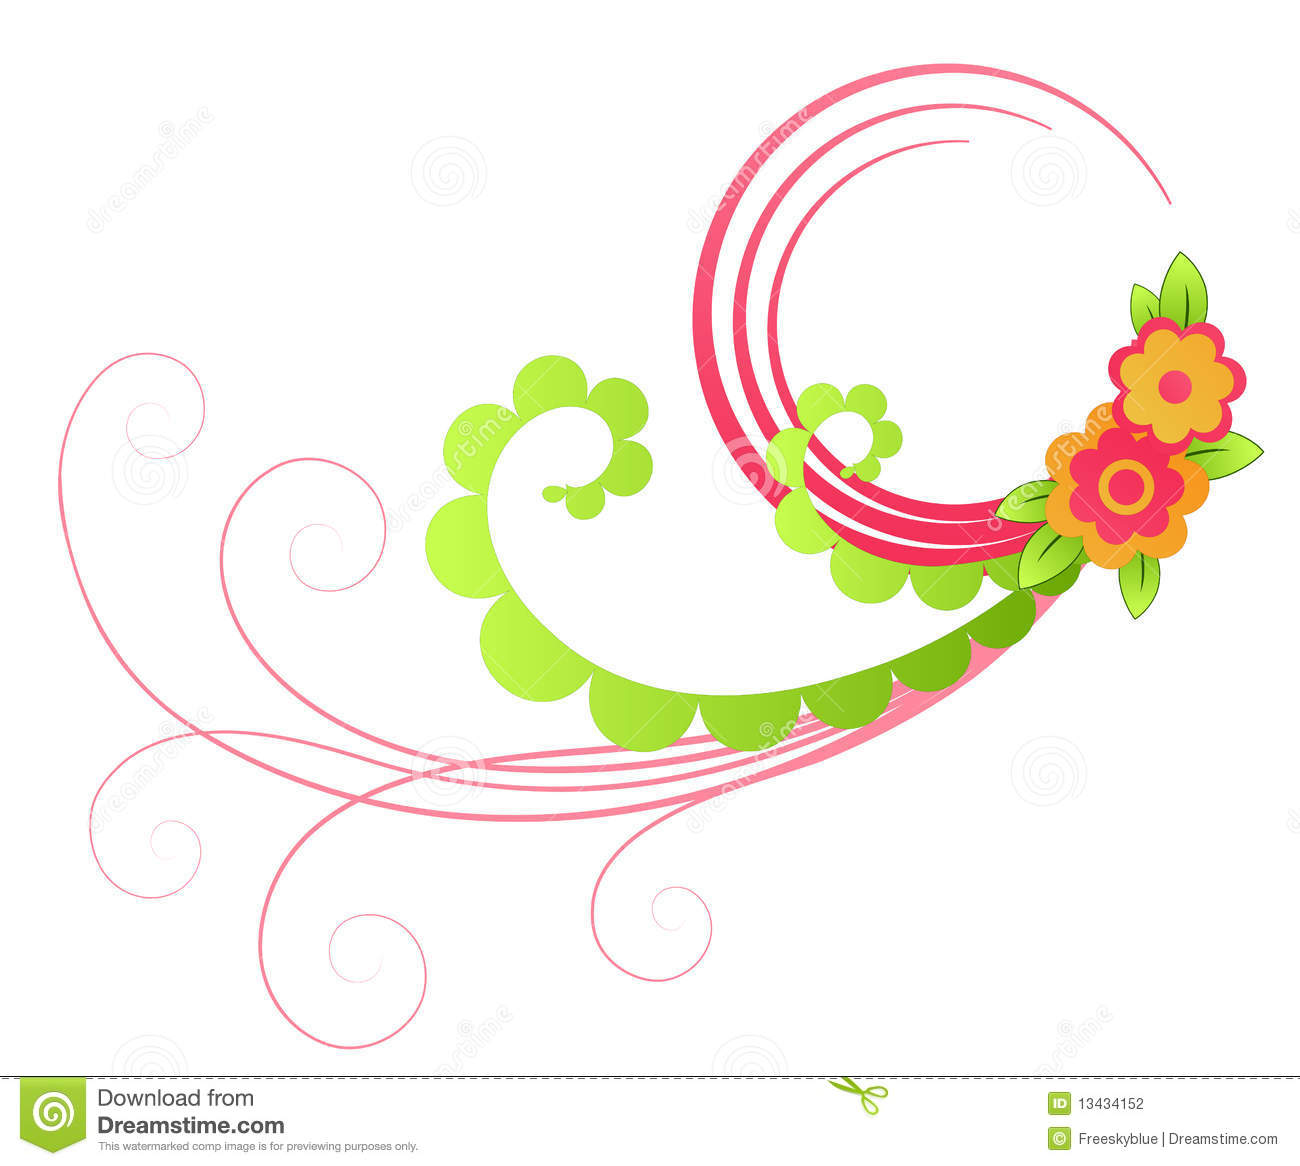 Clipart flowers and vines png transparent download Flowers on vines clipart - ClipartFest png transparent download